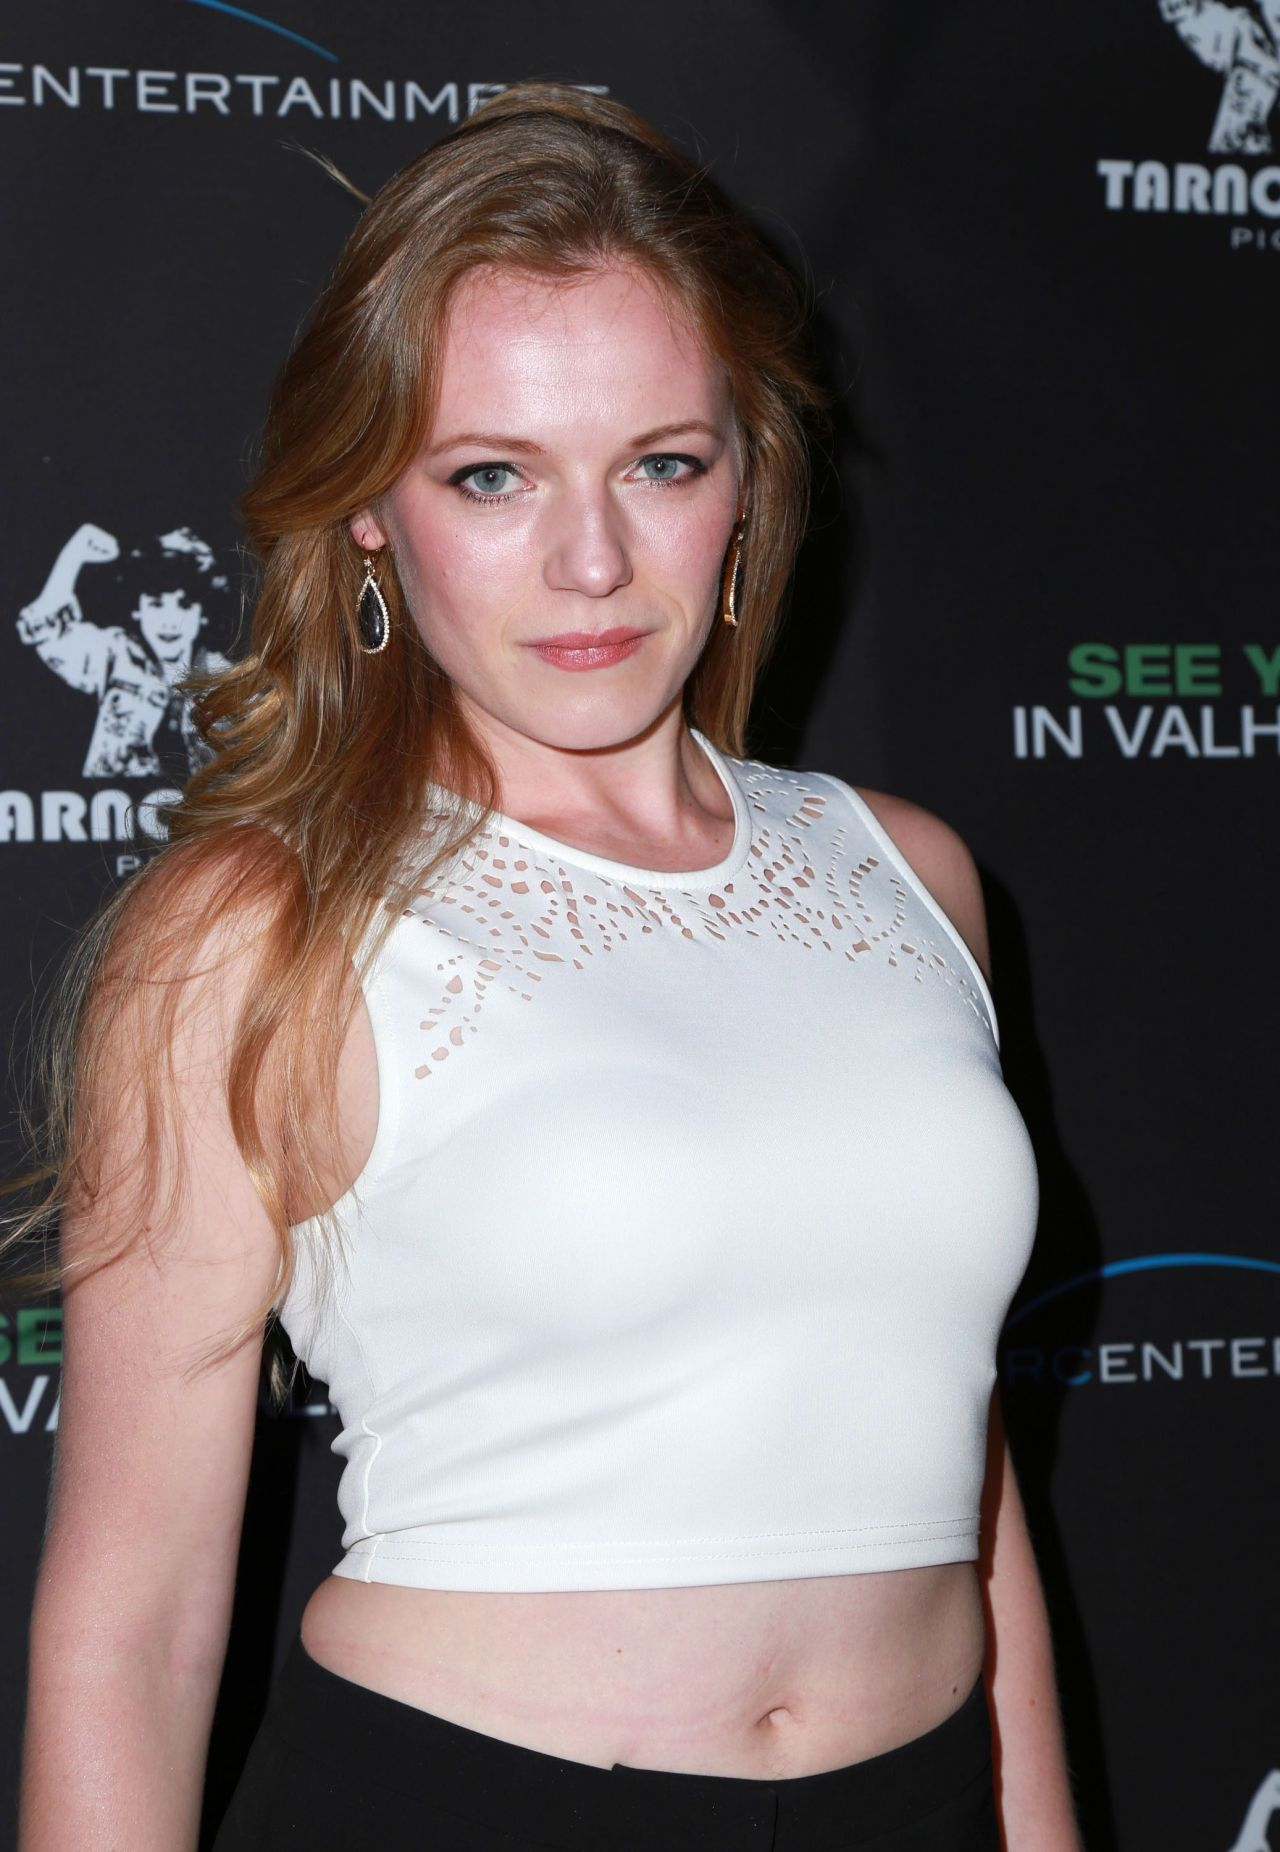 Emma Bell Latest Photos Celebmafia